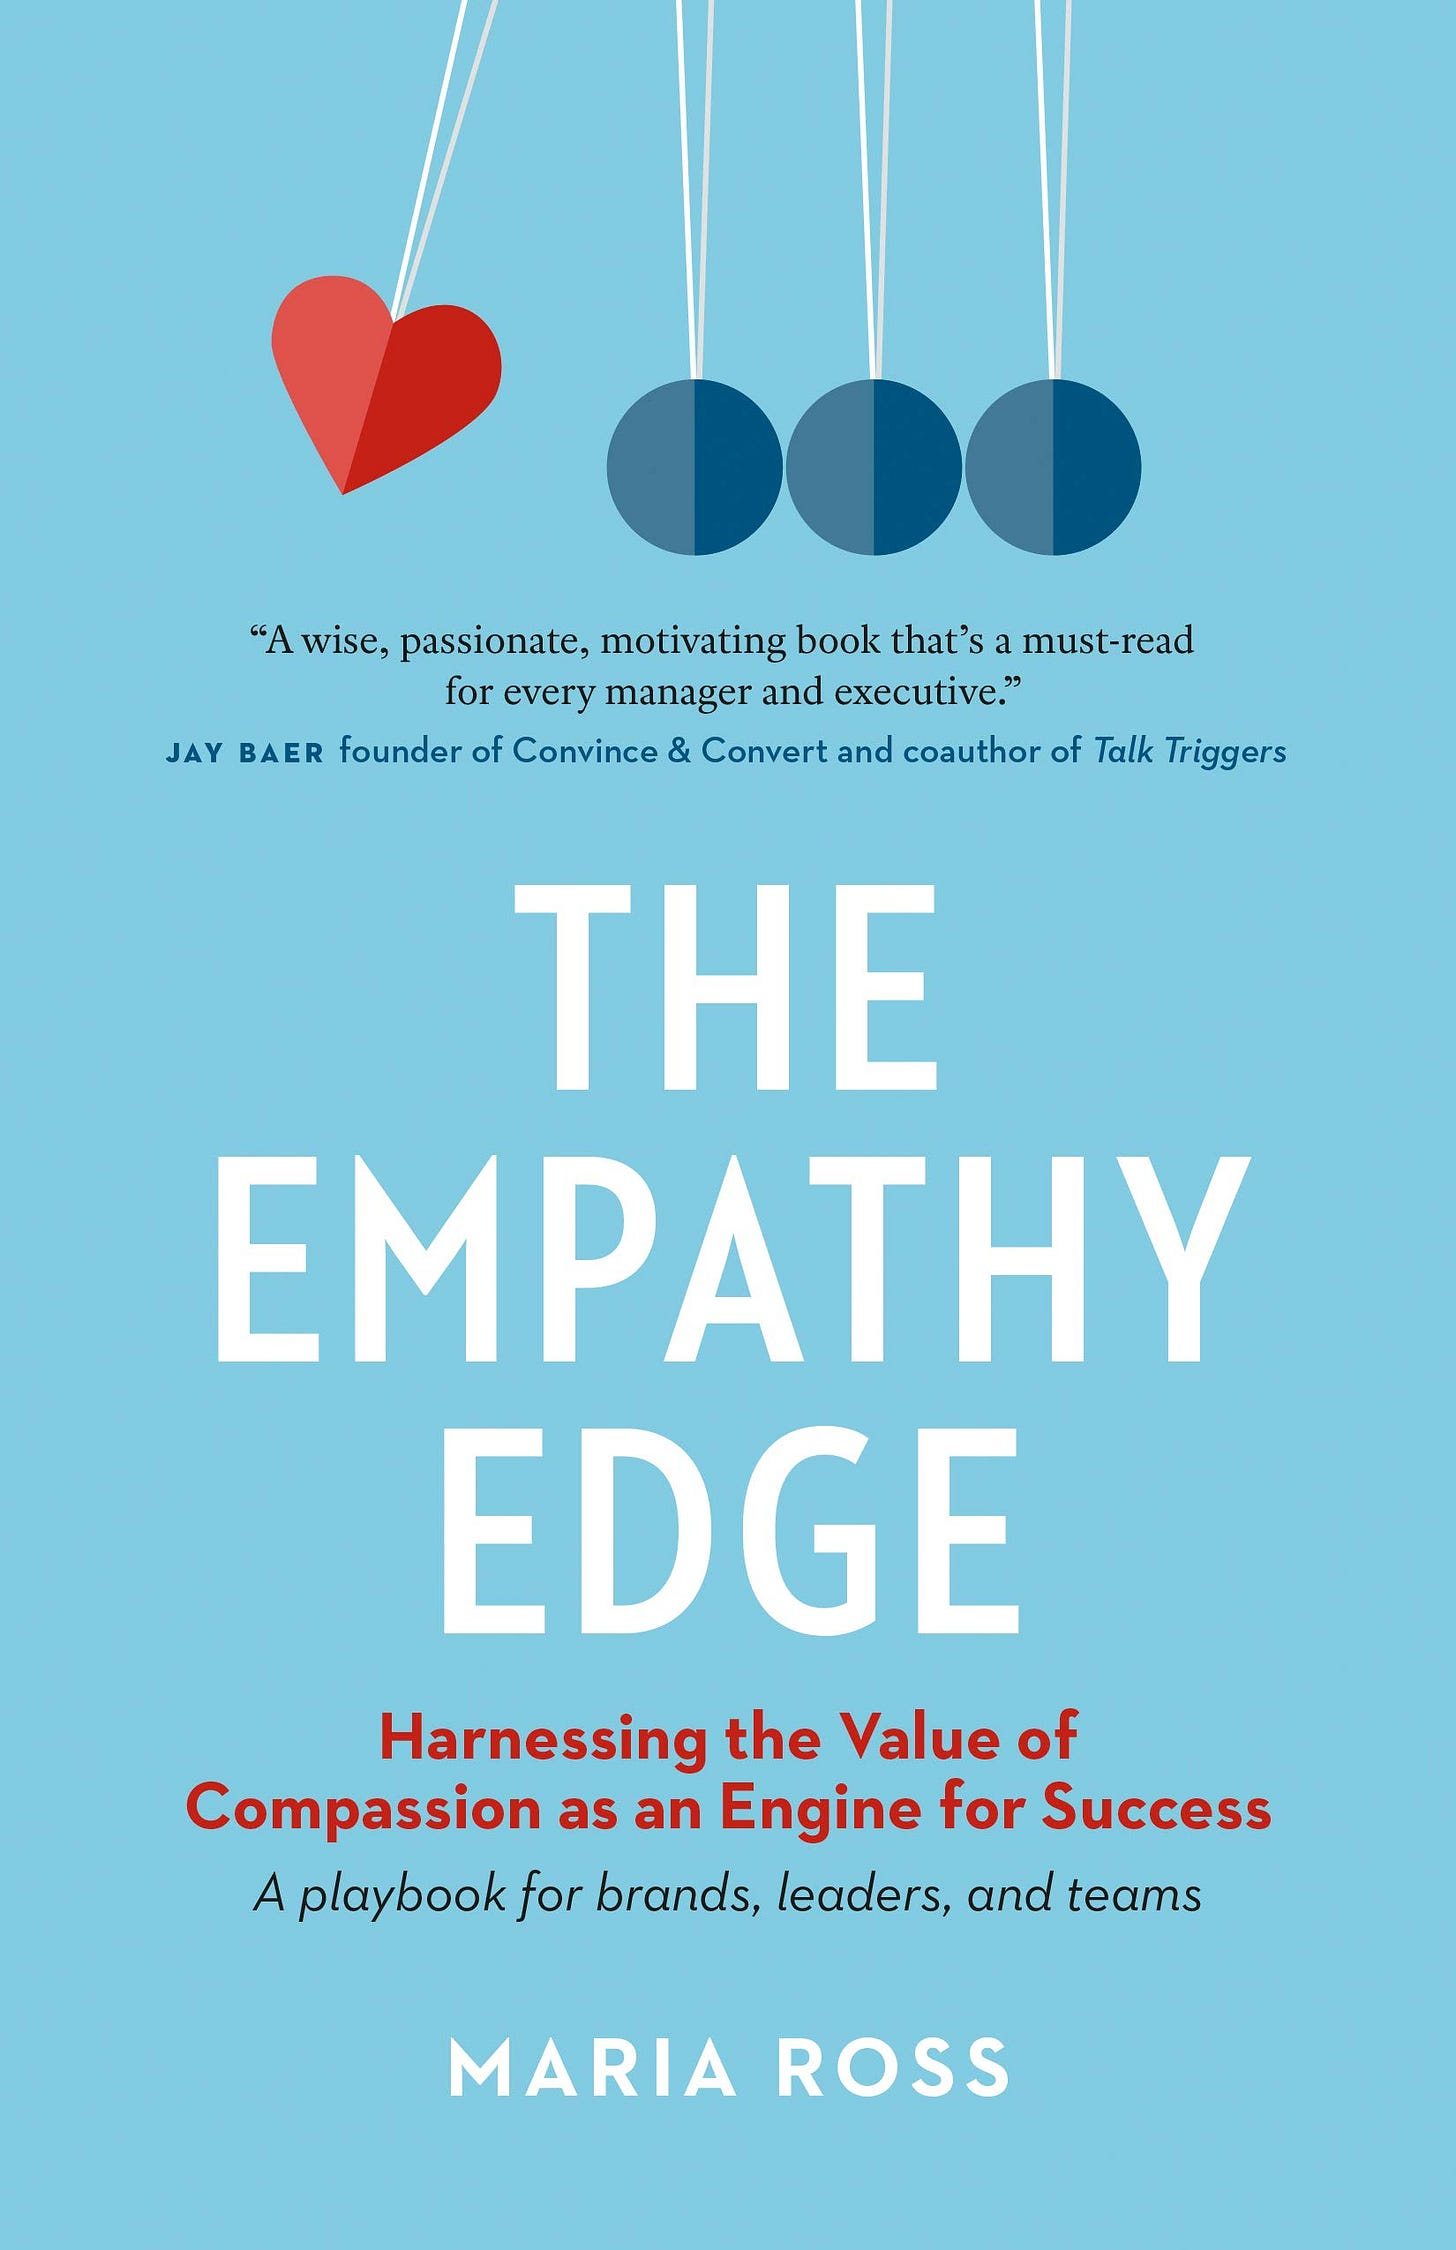 Book cover: The Empathy Edge by Maria Ross